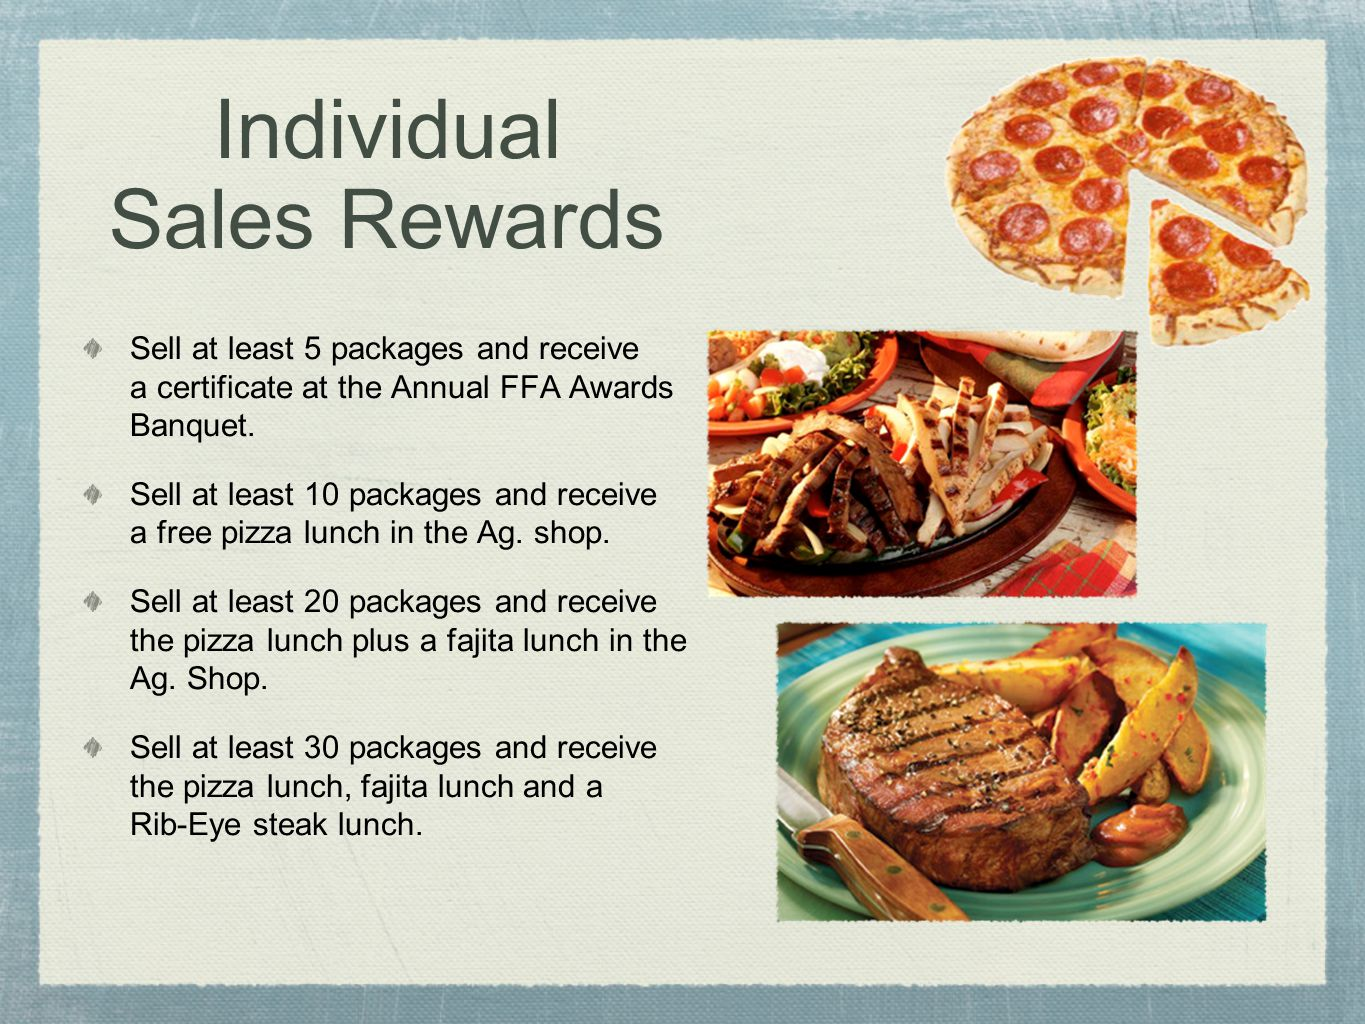 Individual Sales Rewards Sell at least 5 packages and receive a certificate at the Annual FFA Awards Banquet. Sell at least 10 packages and receive a